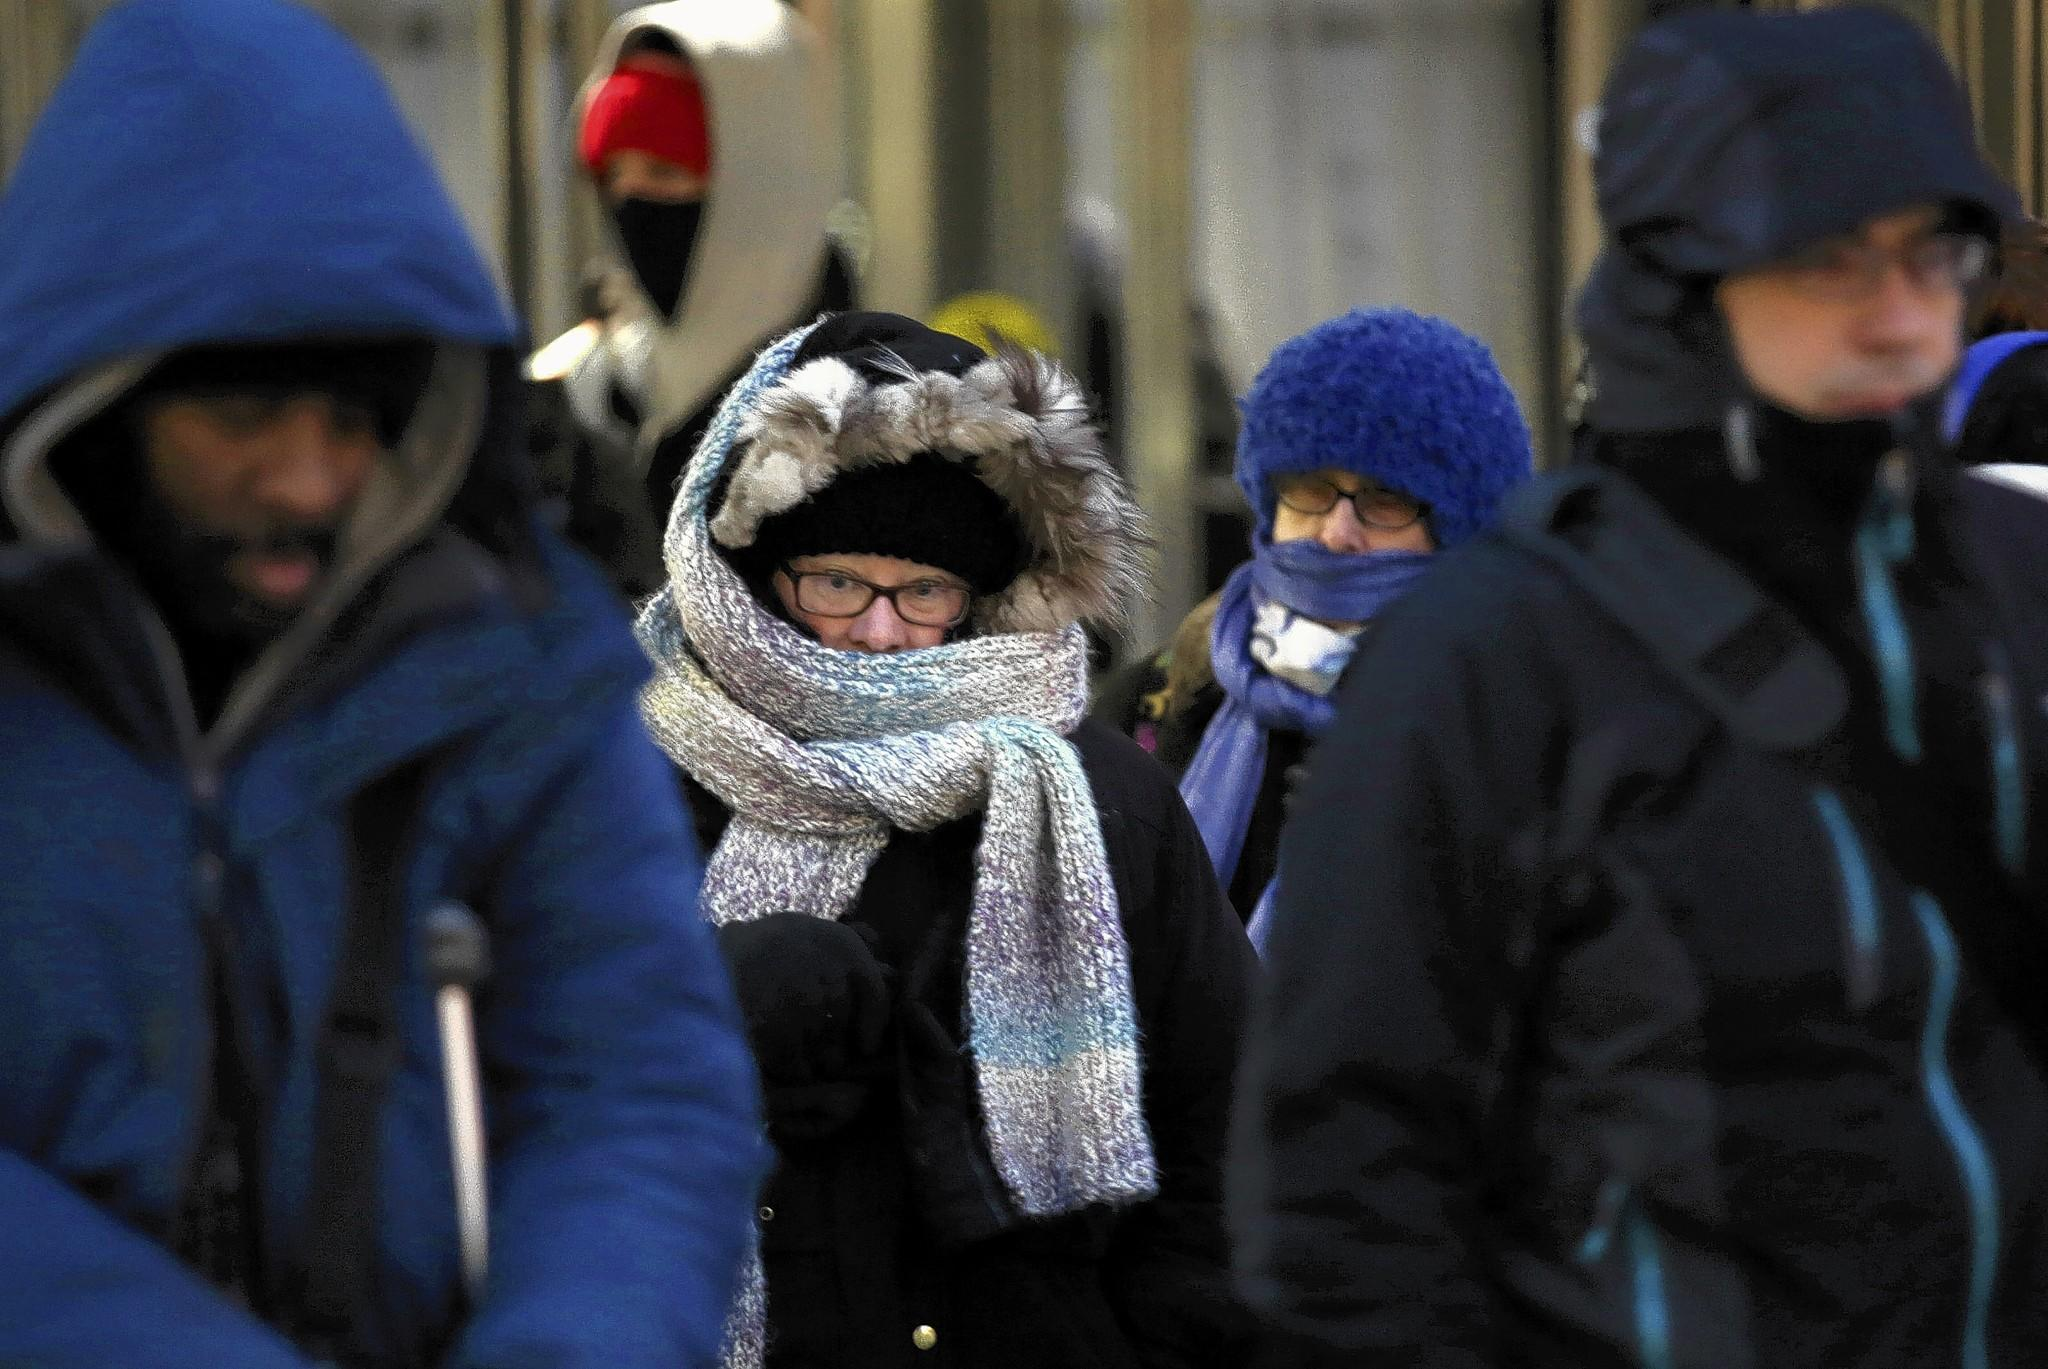 Commuters show off their scarf-wrapping techniques as they brace themselves to exit Union Station in downtown Chicago on Monday.